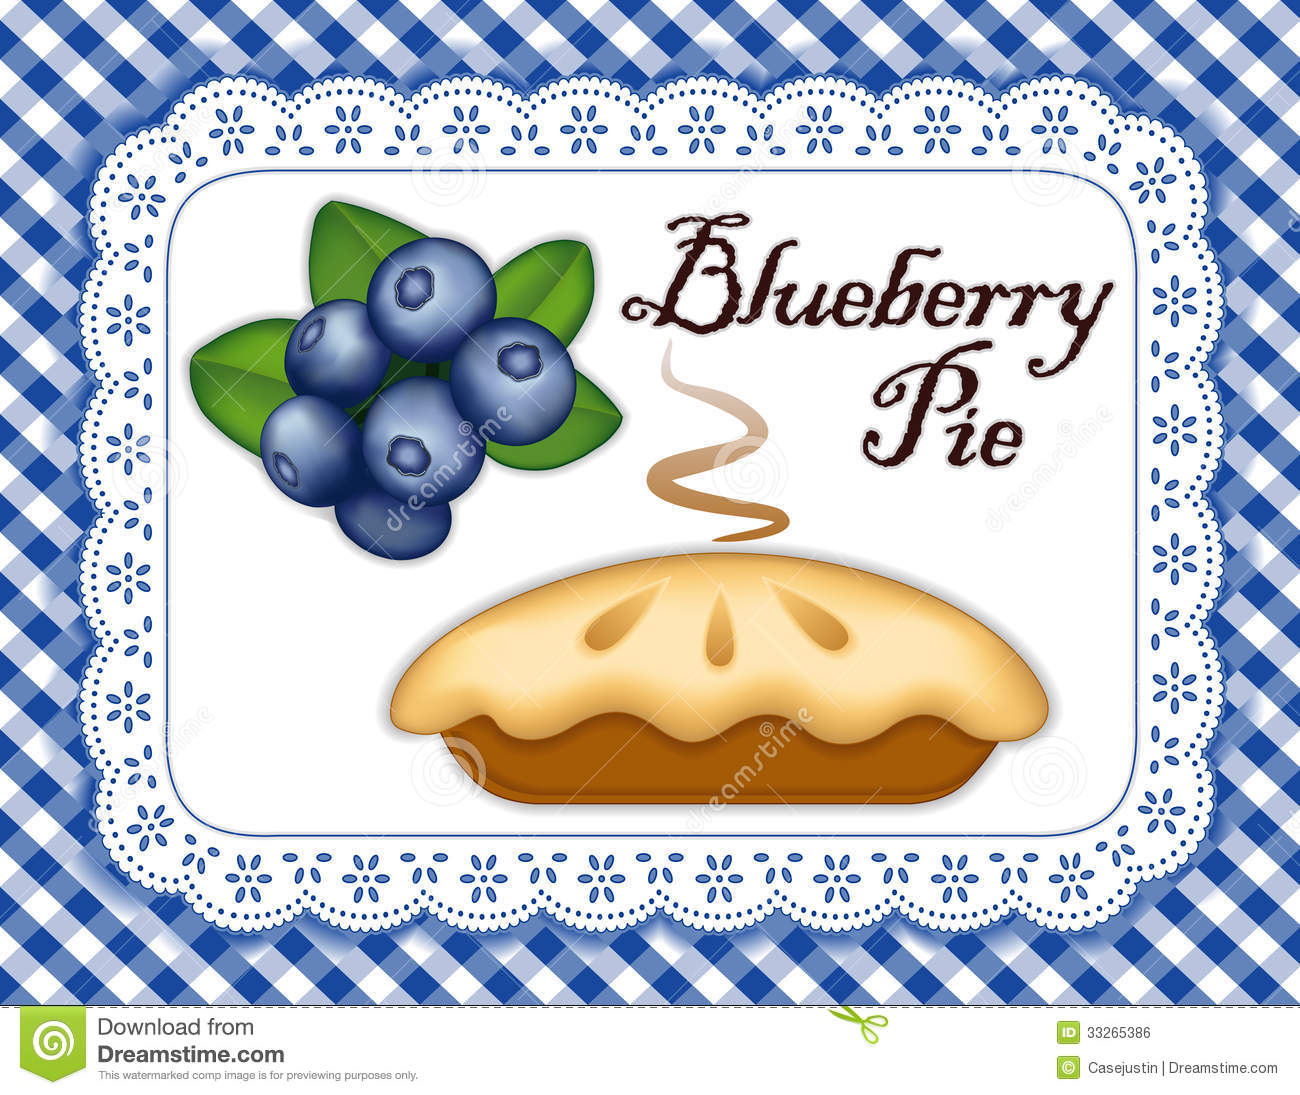 Blueberry Pie, Lace Doily Place Mat, Blue Gingham Royalty Free.